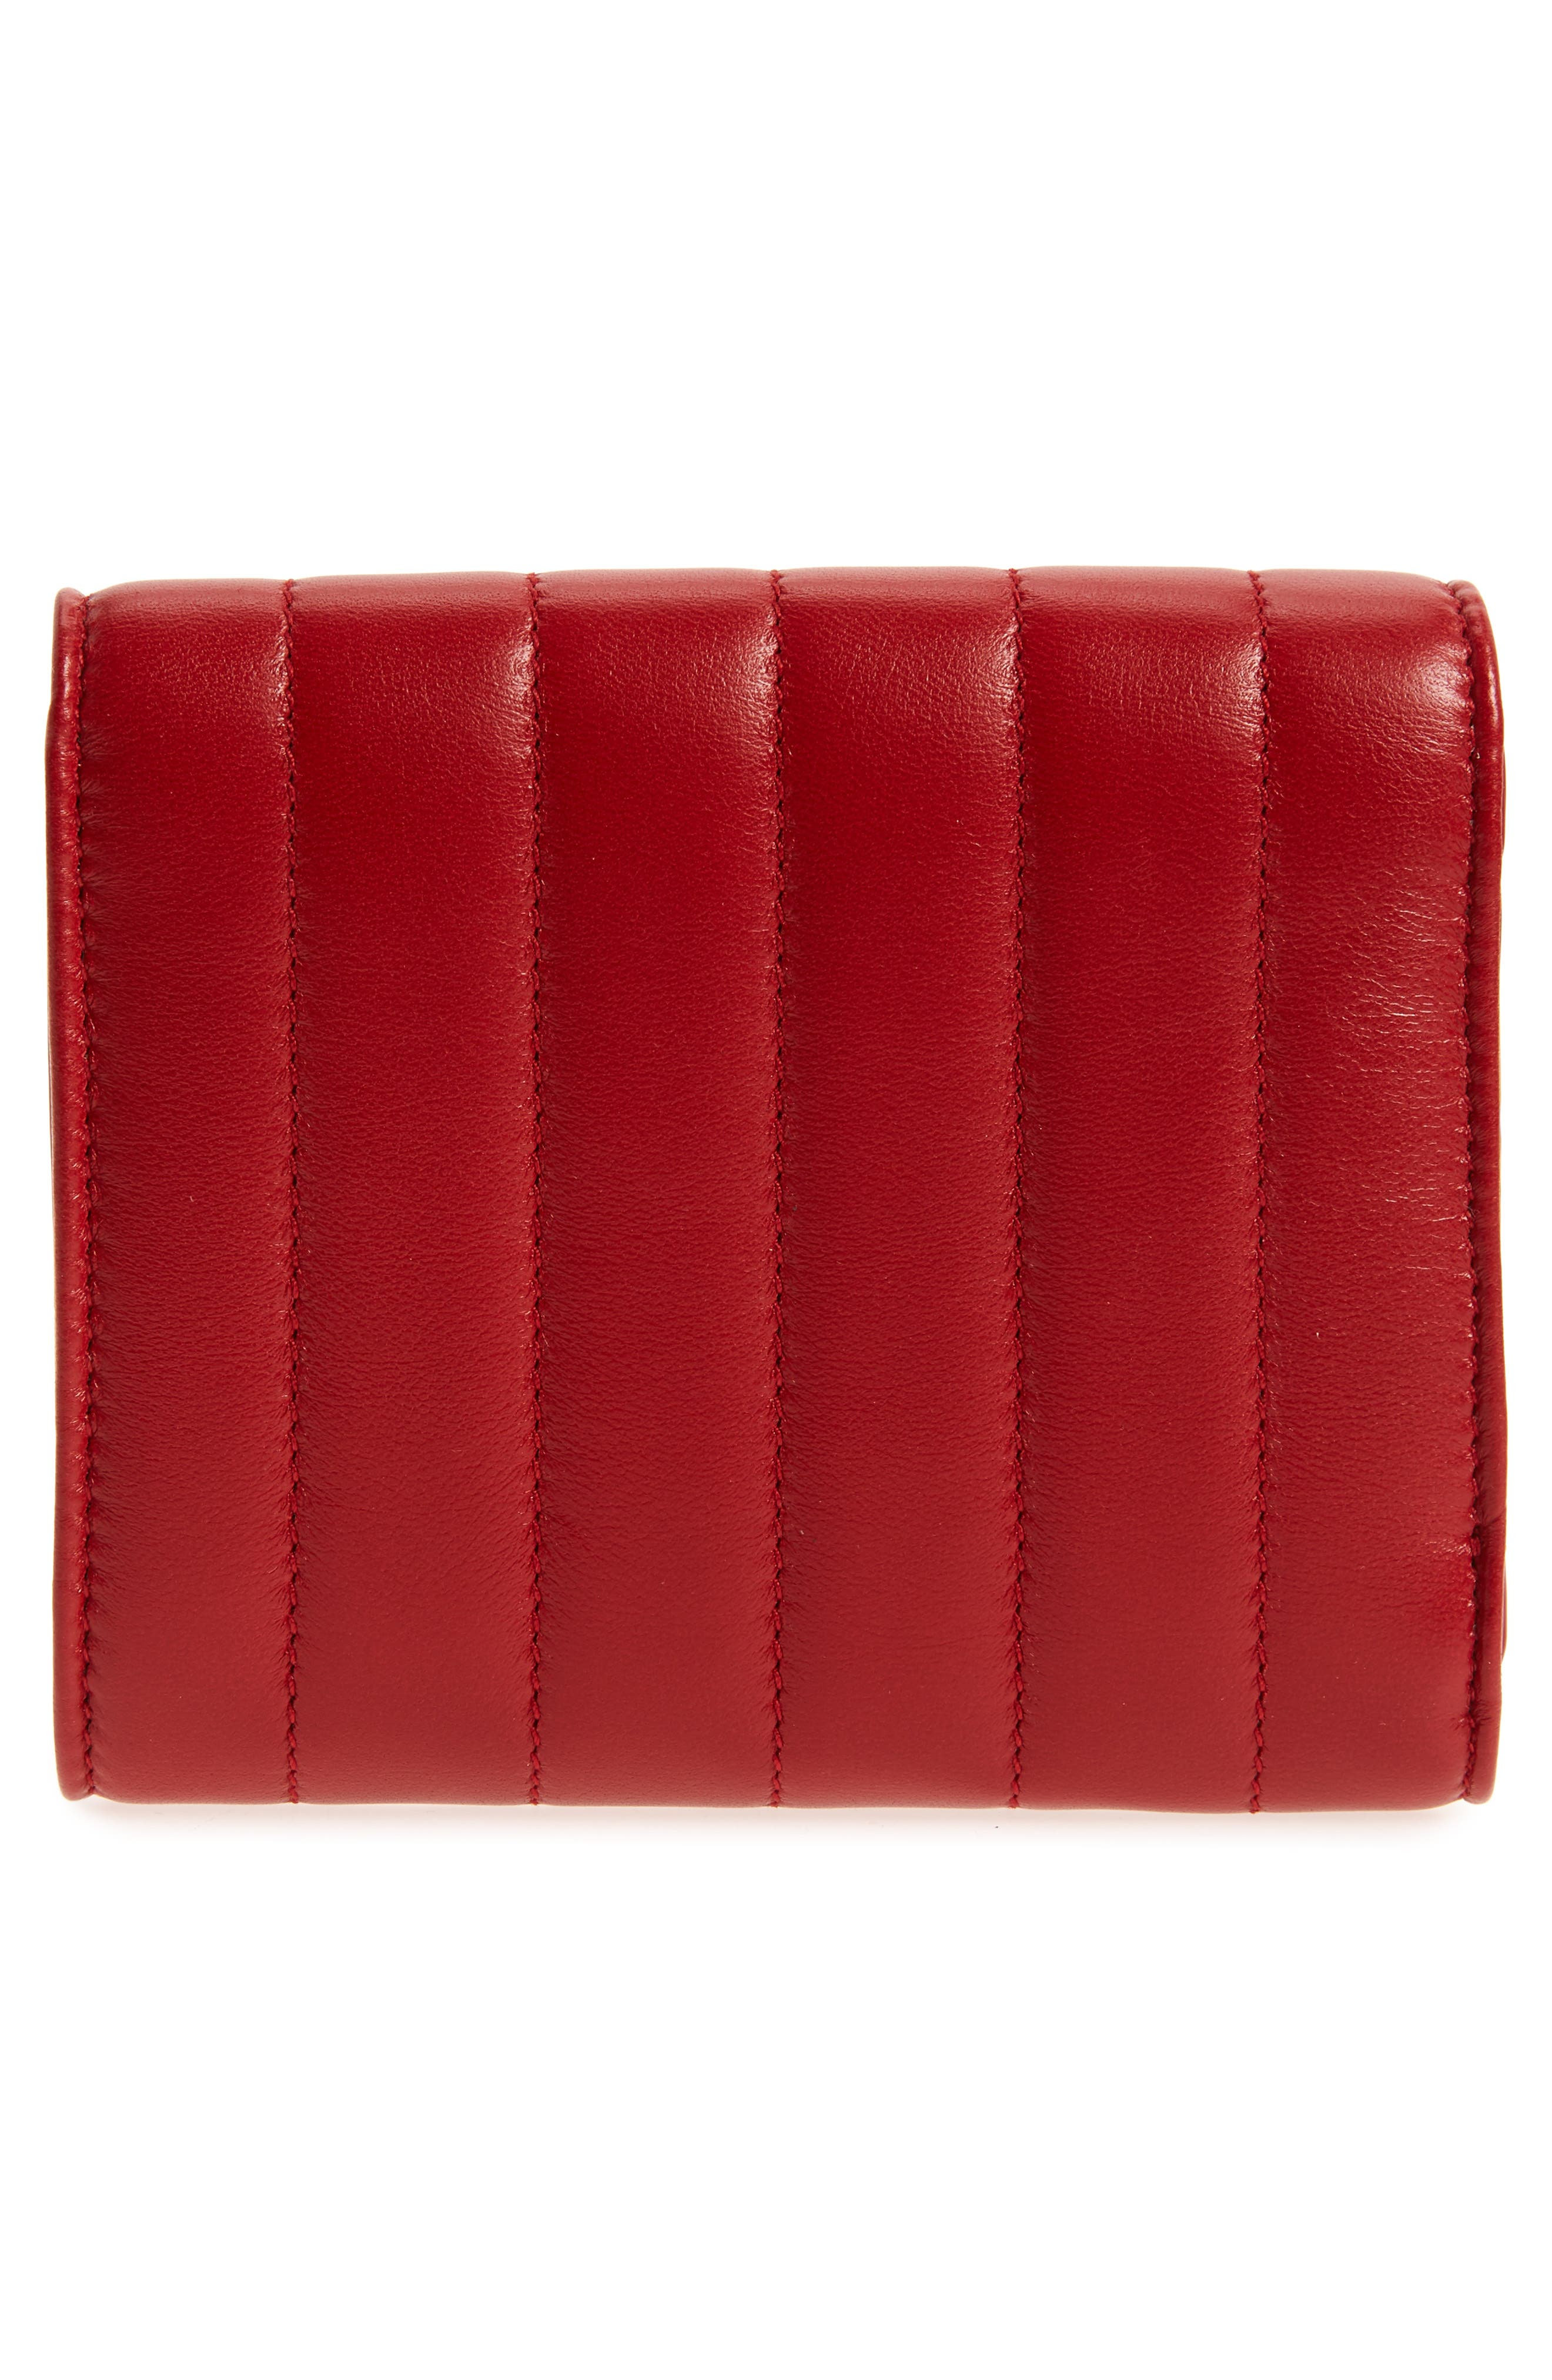 Vicky Lambskin Leather Trifold Wallet,                             Alternate thumbnail 4, color,                             ROUGE EROS